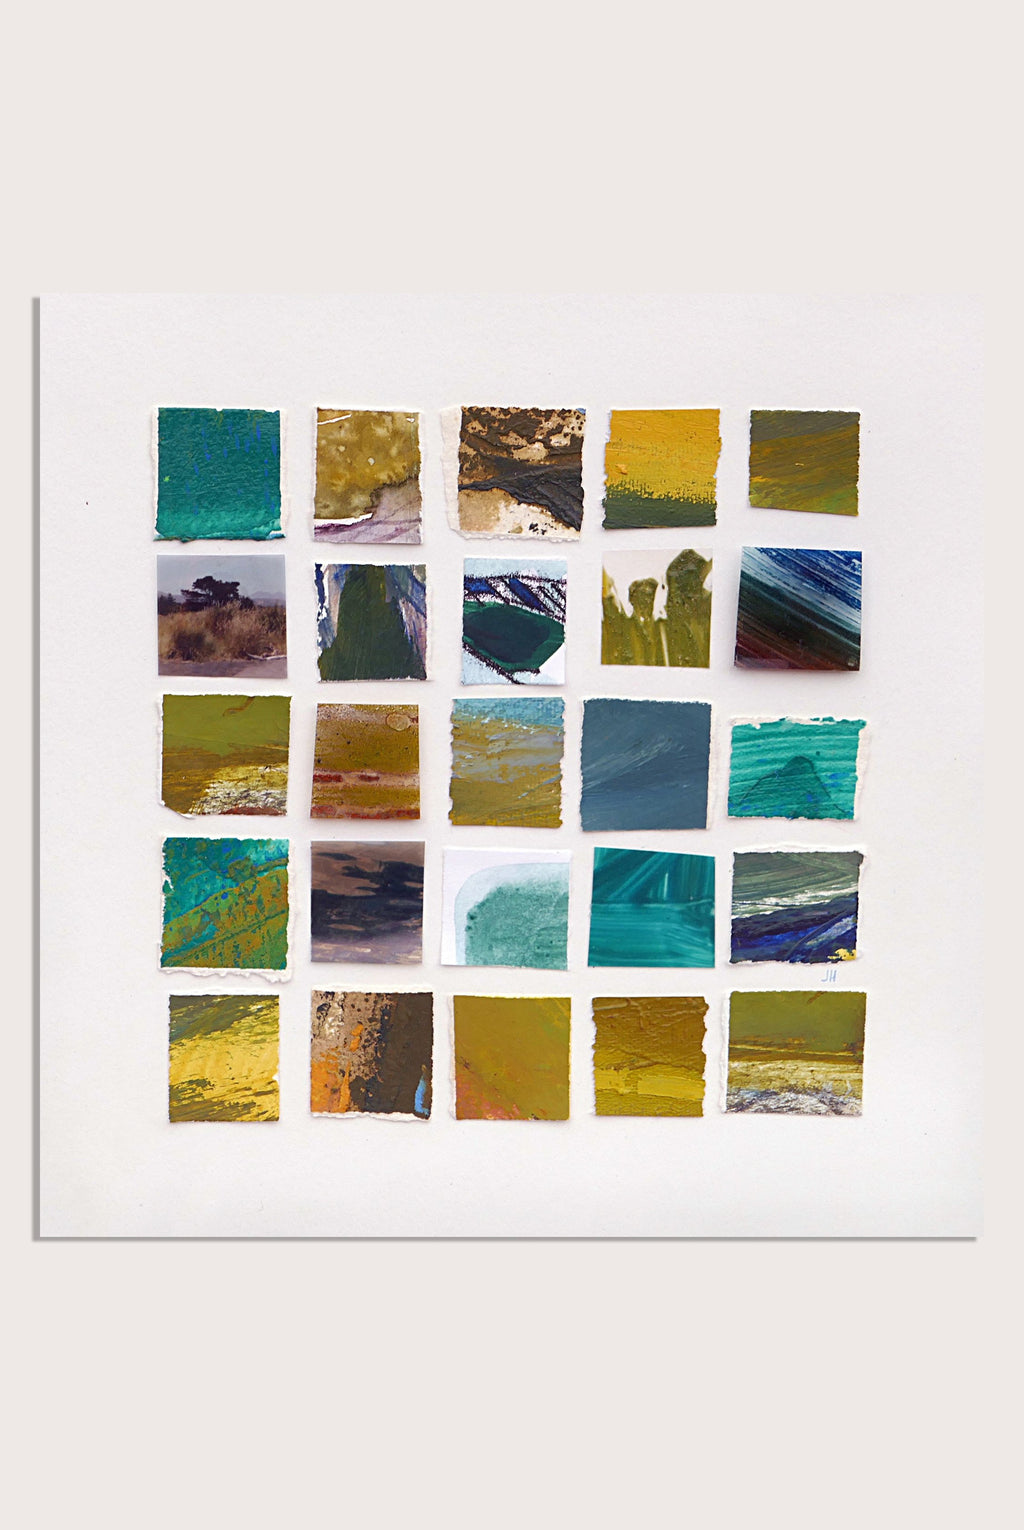 Abstract, mini landscapes by contemporary, woman artist Jane Hodgson